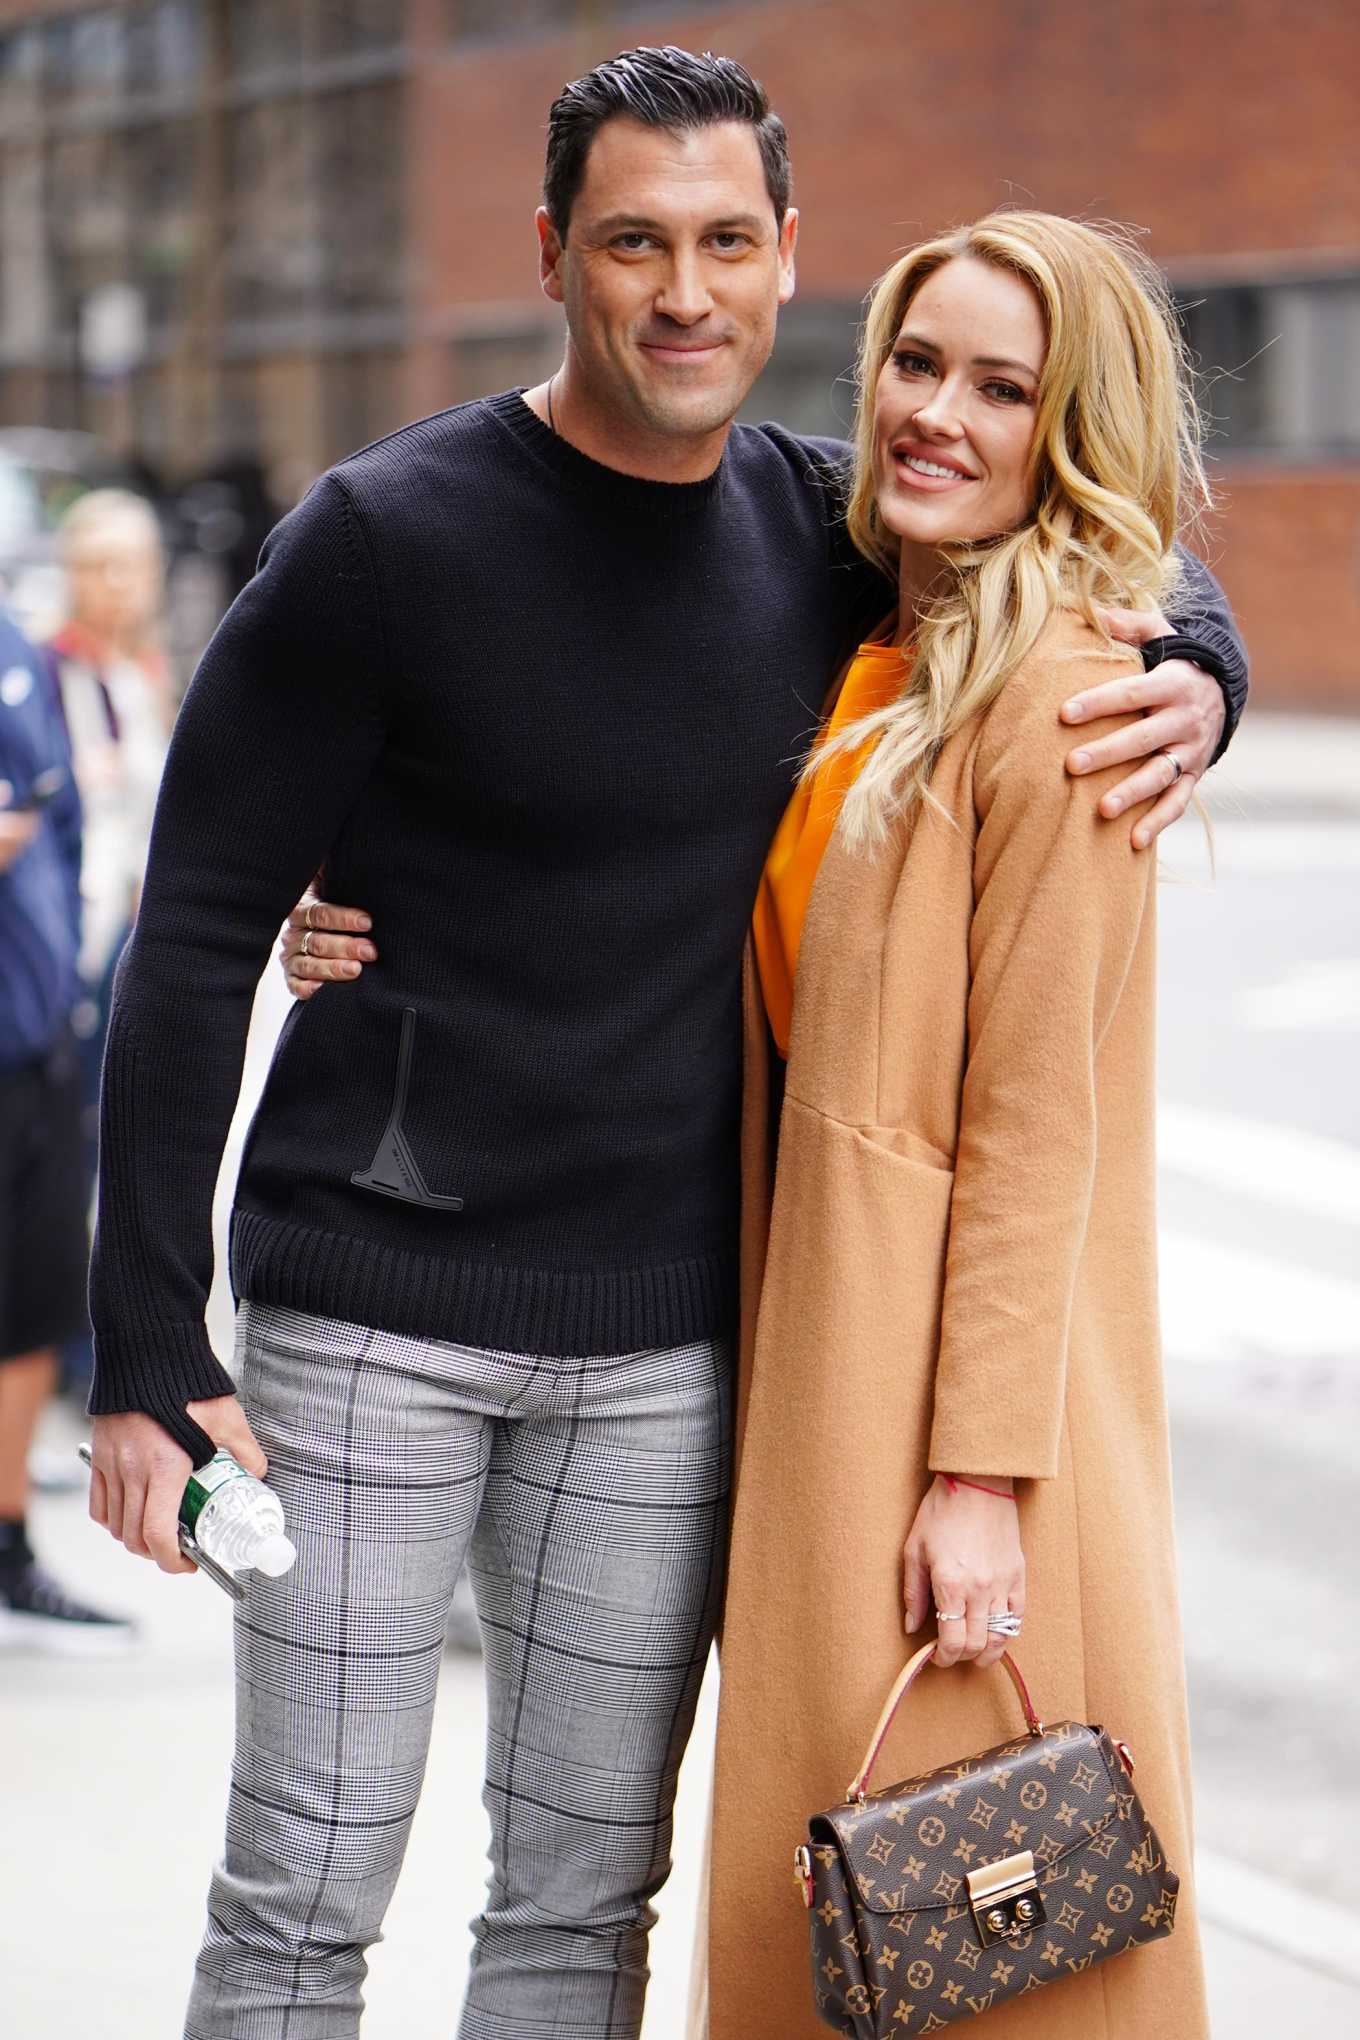 Peta Murgatroyd and Maksim Chmerkovskiy - Outside of BUILD in New York